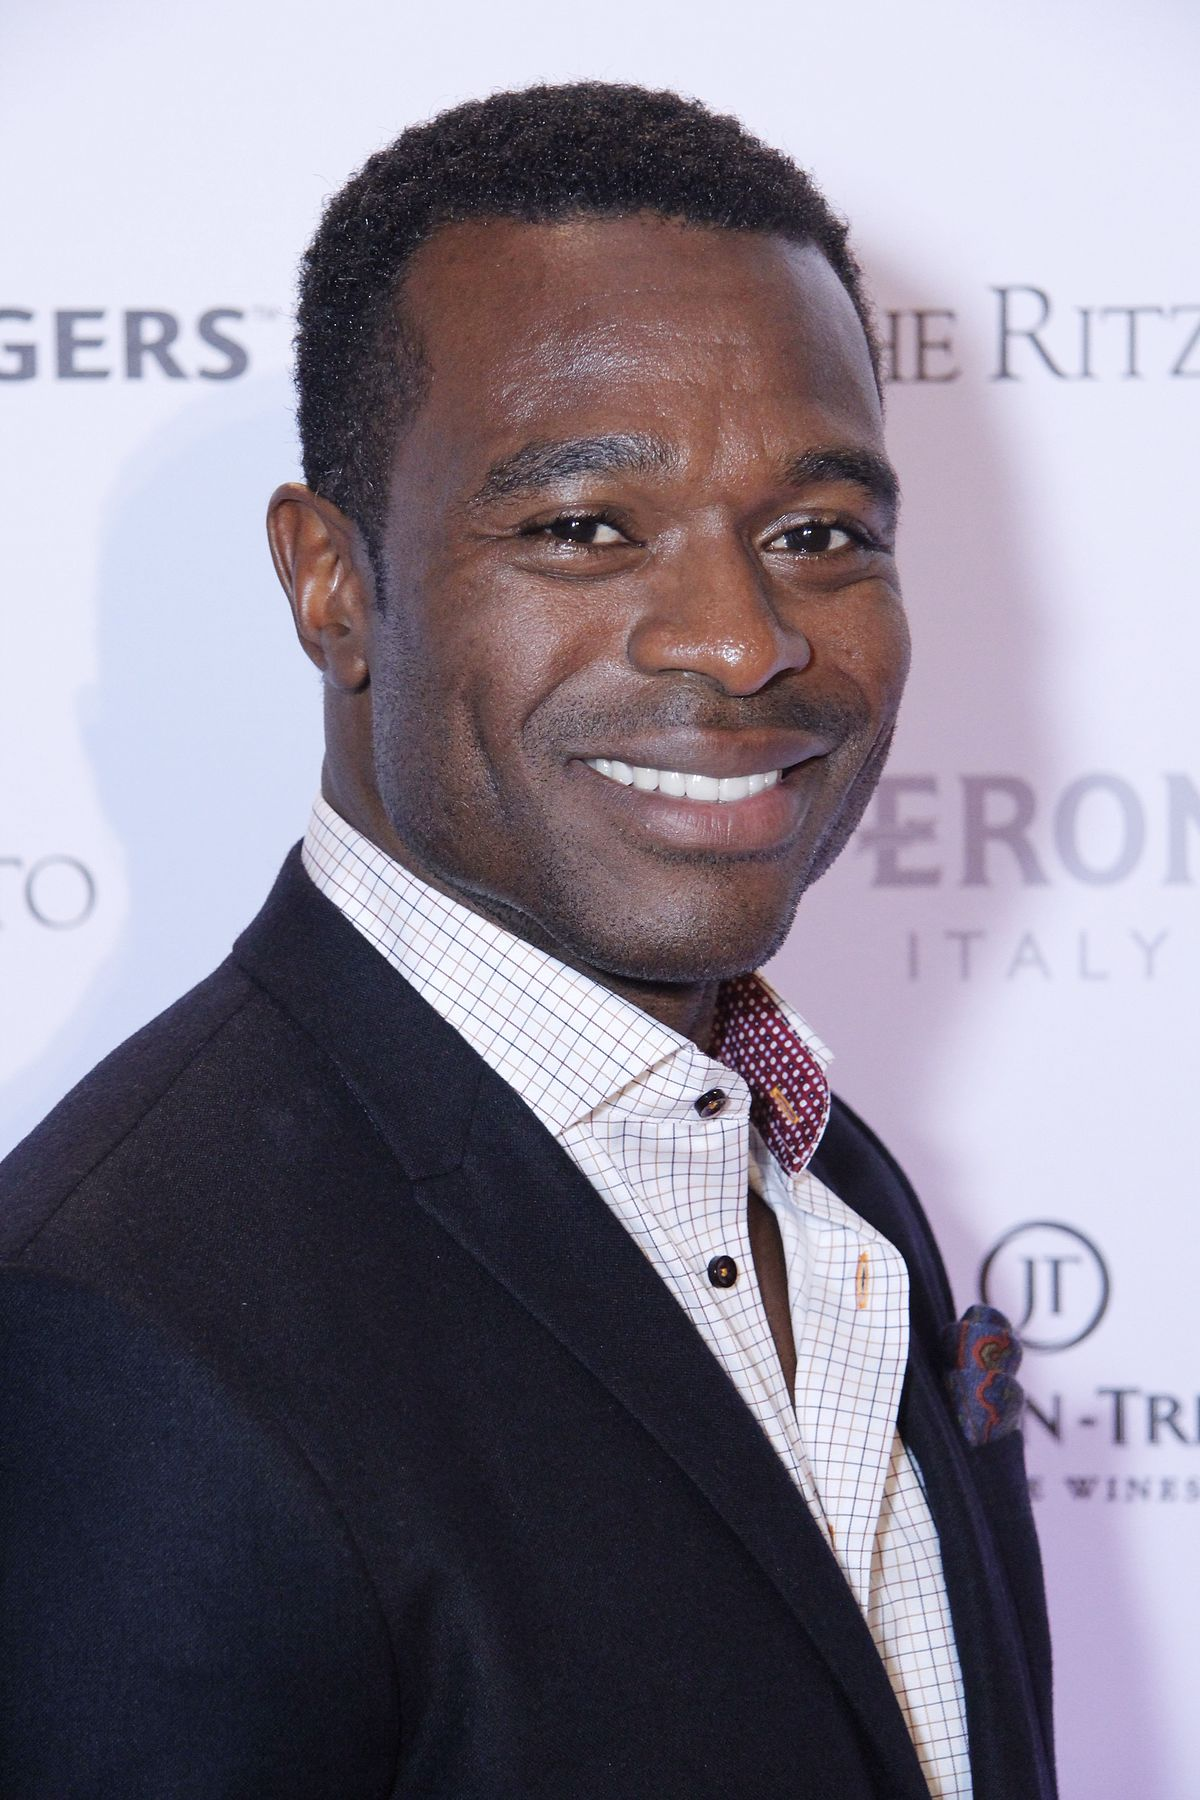 lyriq bent wikipedia